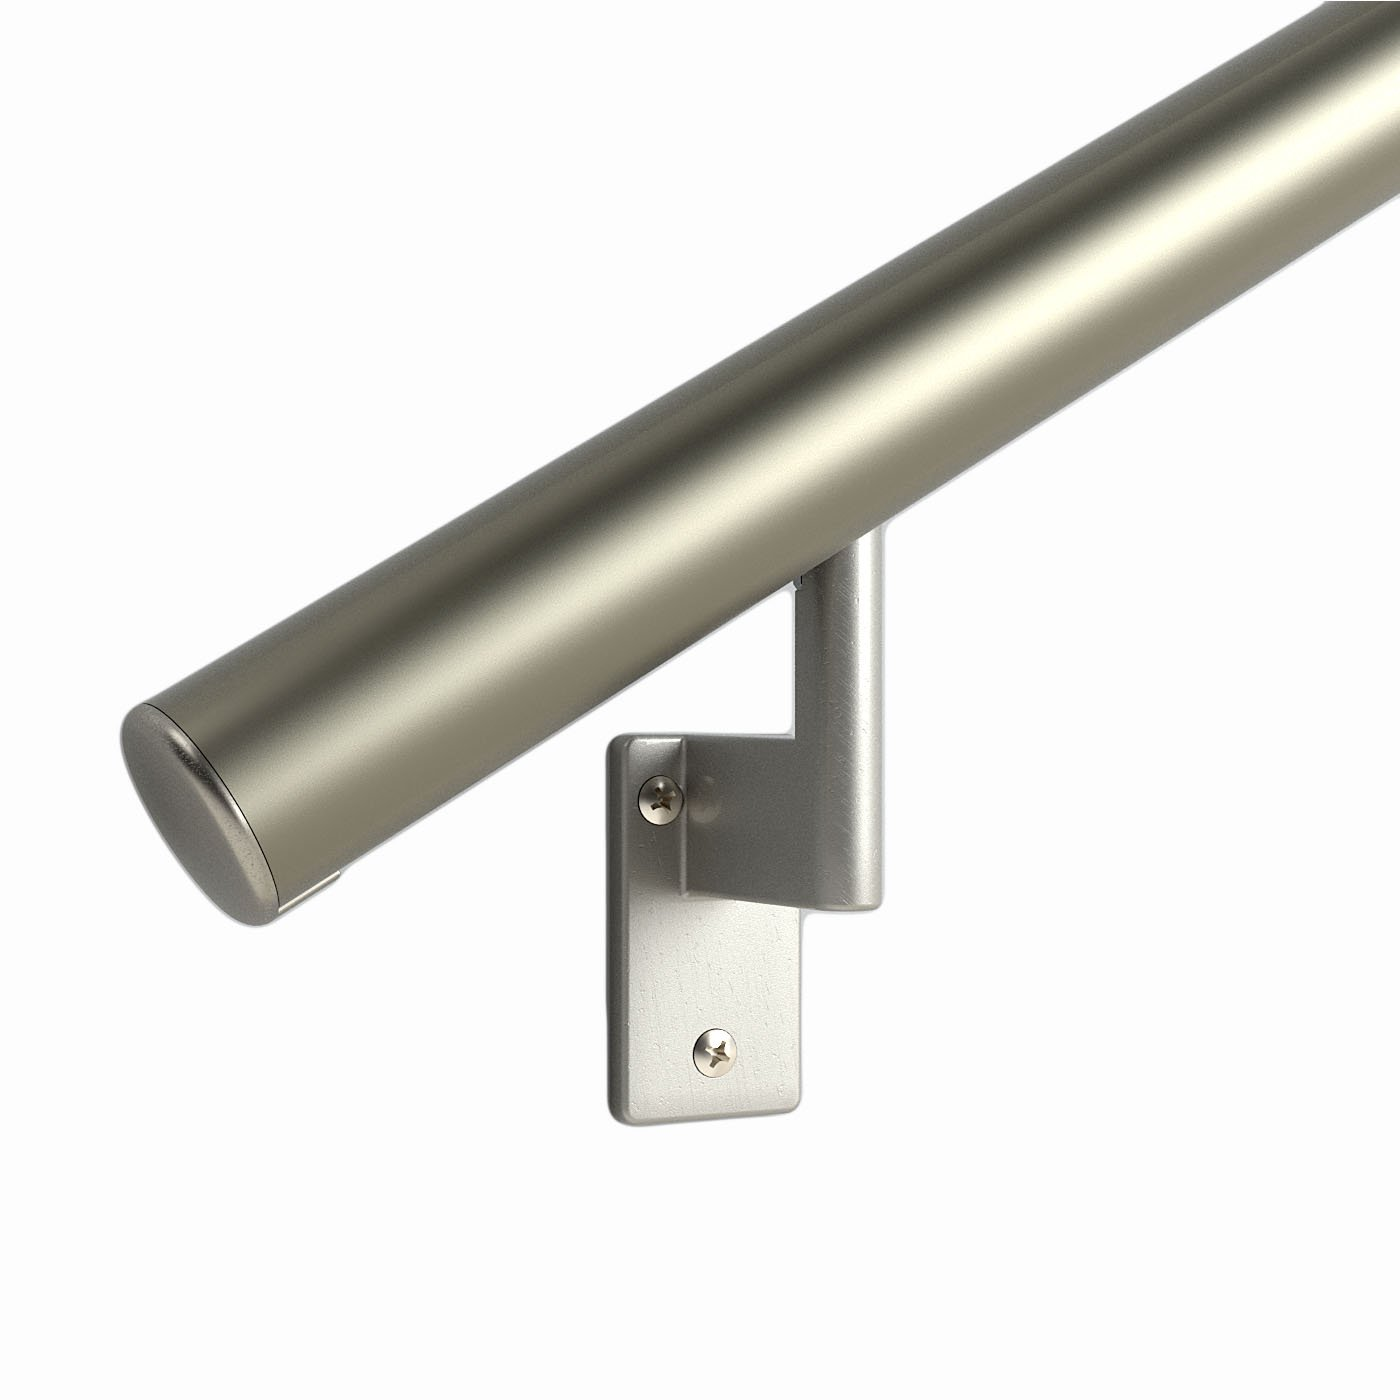 2 ft. Handrail - Complete Kit. Champagne Anodized Aluminum with 2 Matte Nickel Wall Brackets and Endcaps - 1.6'' Round